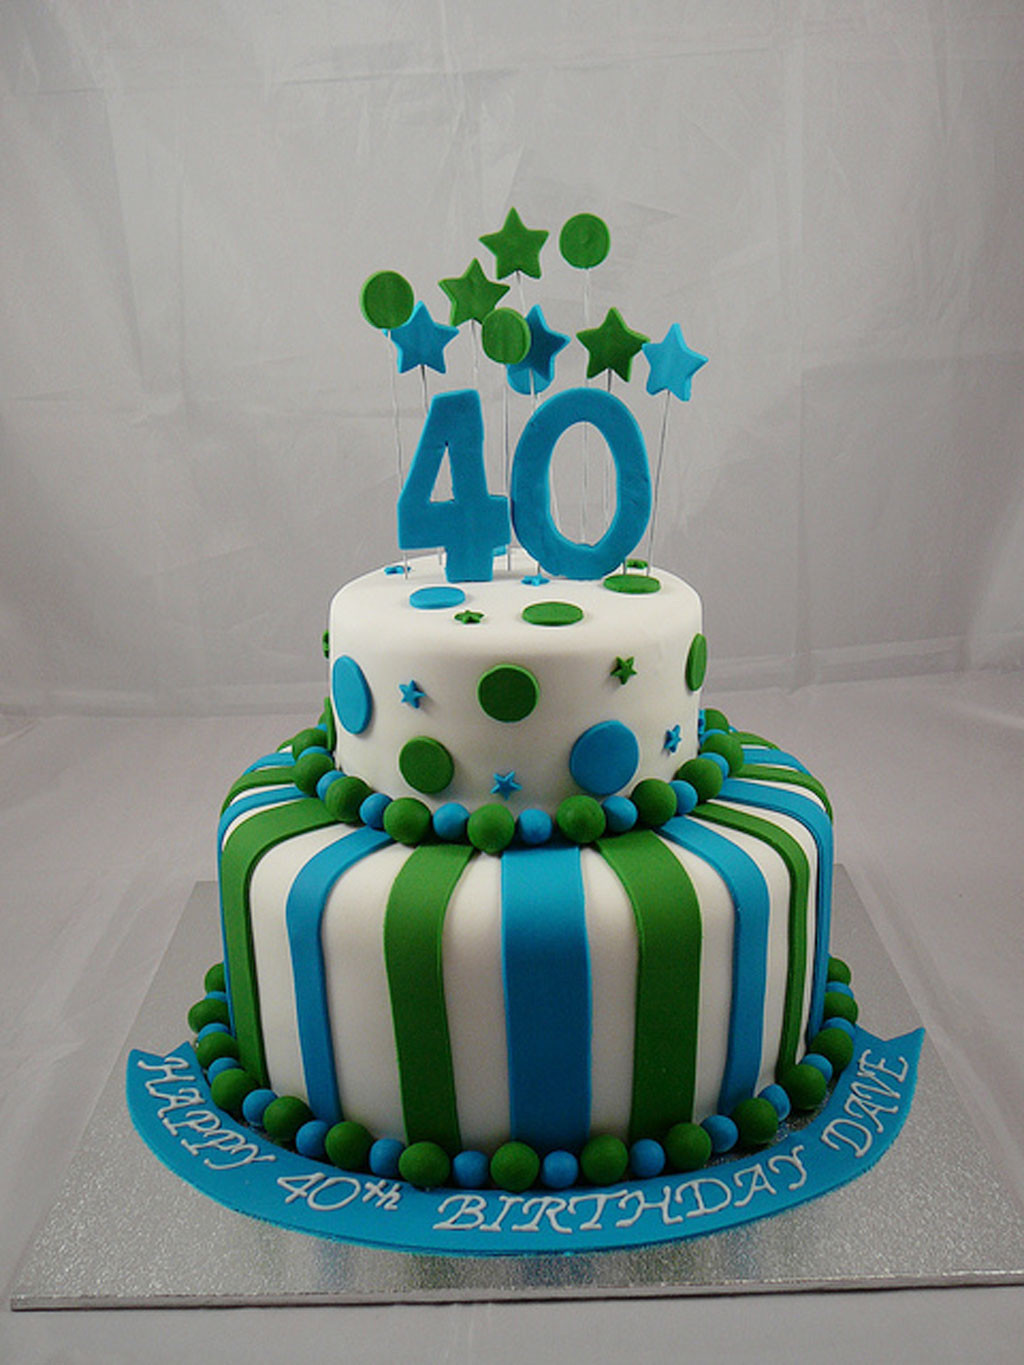 Best ideas about Mens 40th Birthday Cake . Save or Pin Cake man on Pinterest Now.